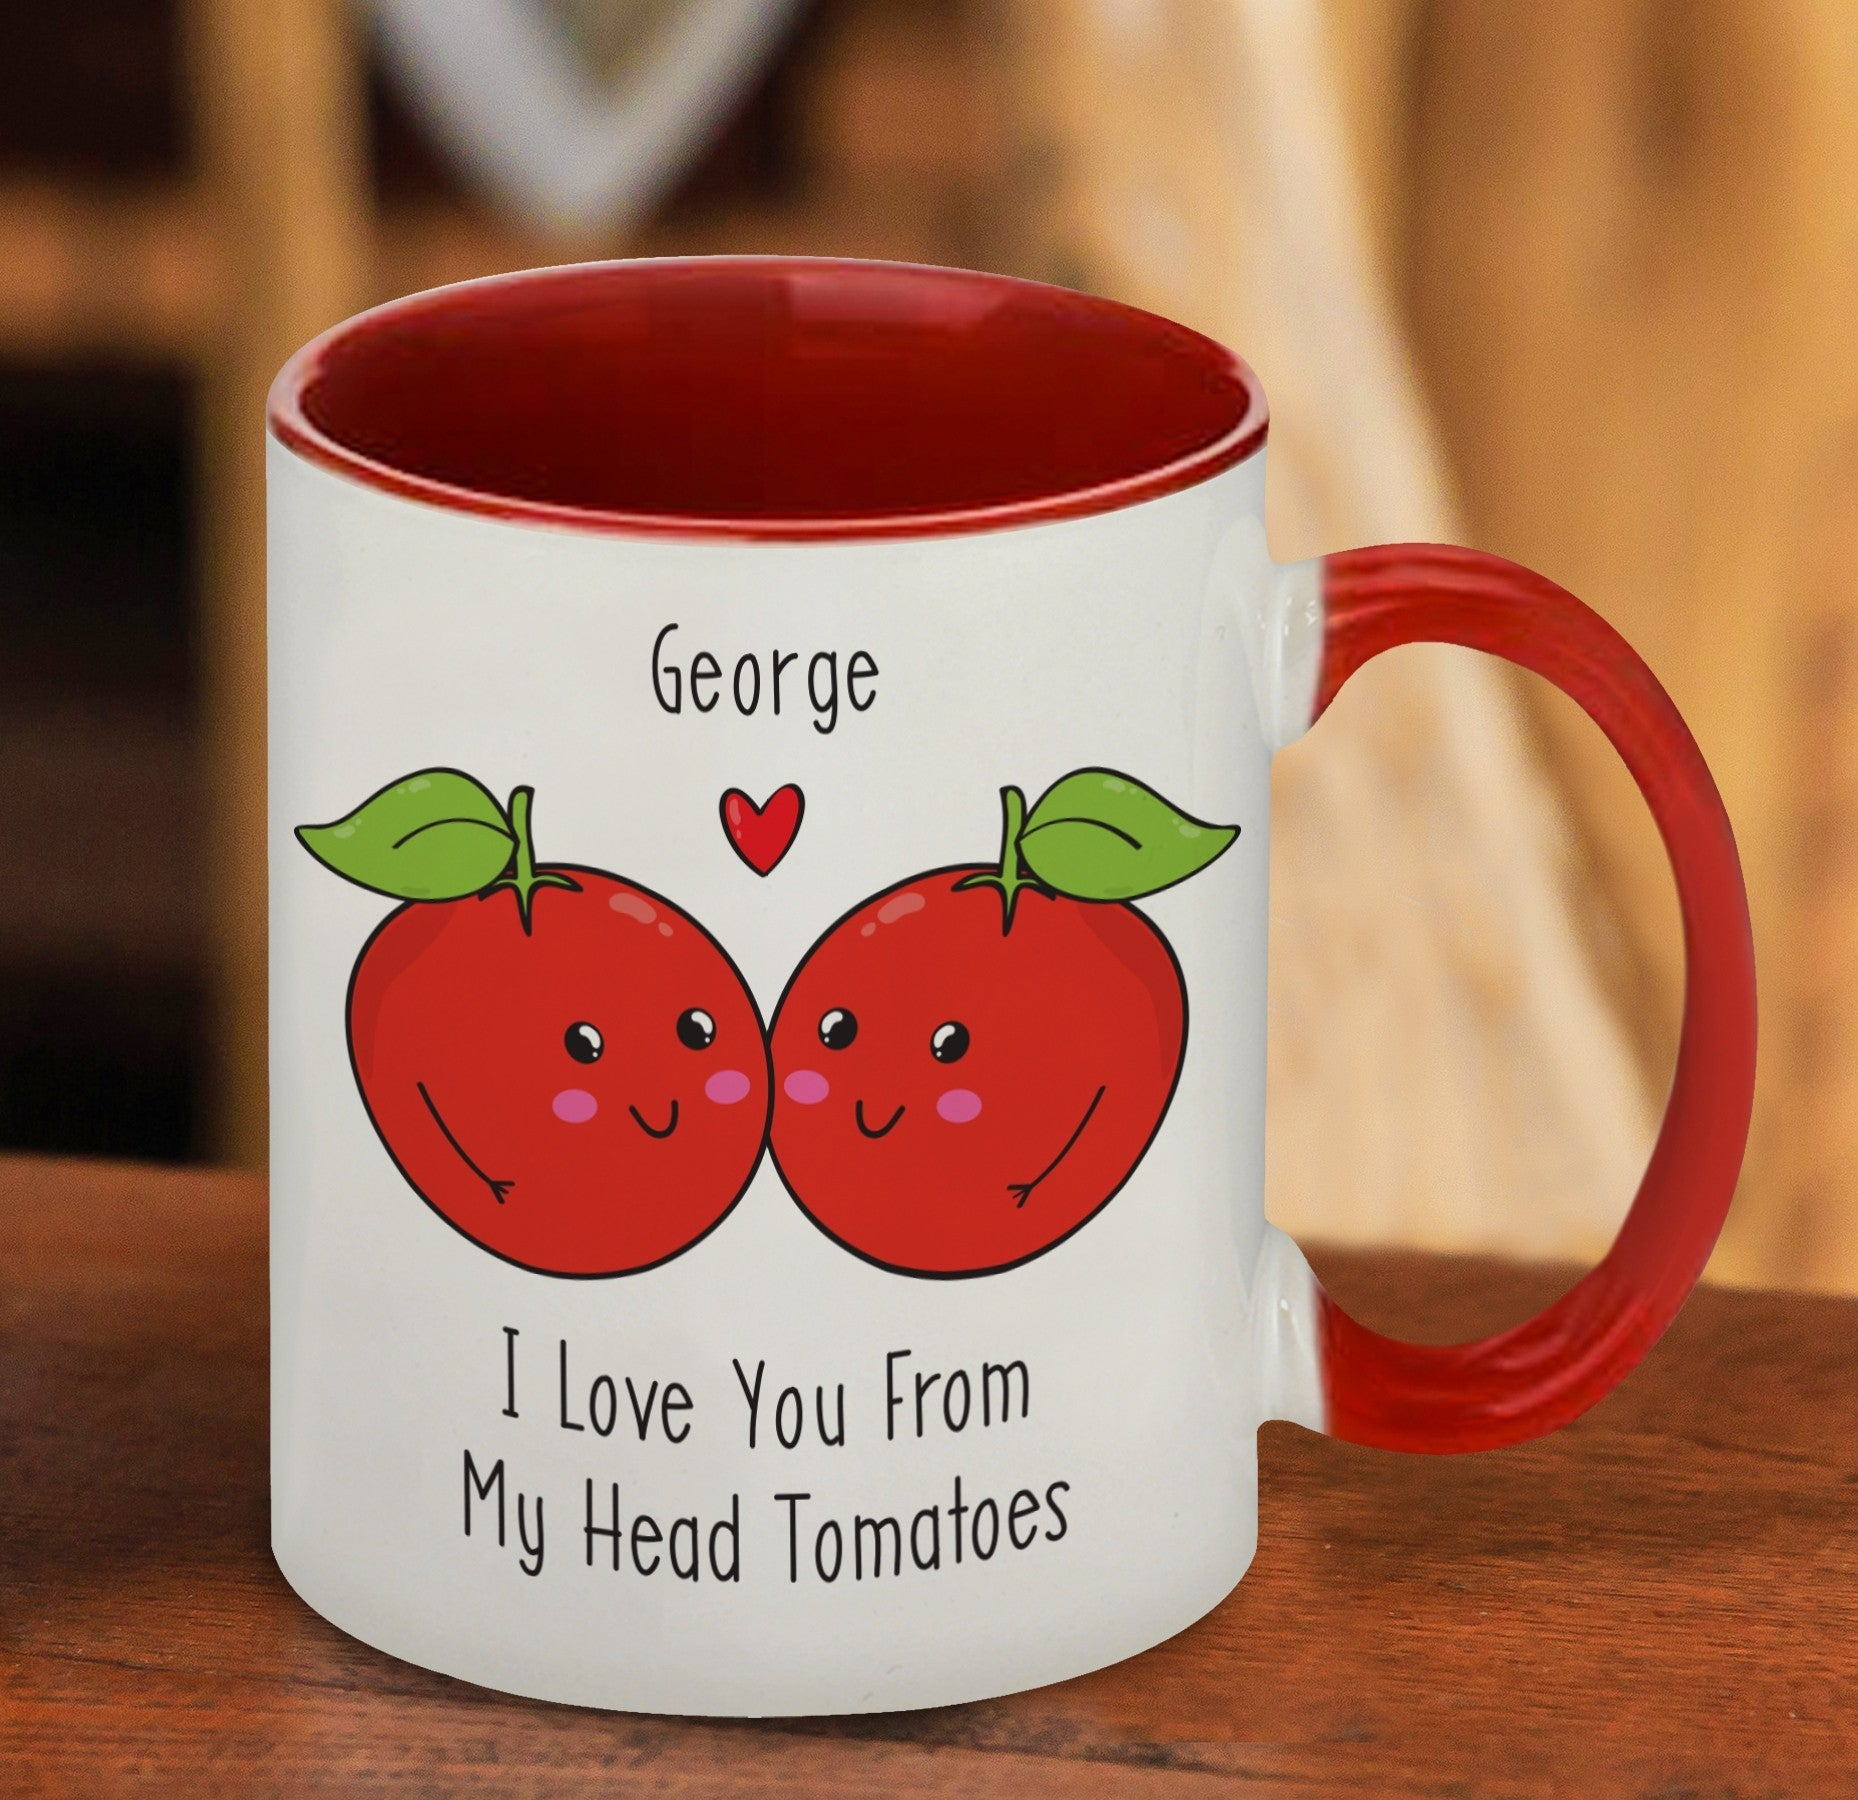 I Love You From My Head Tomatoes Mug, Kitchen & Dining by Gifts24-7